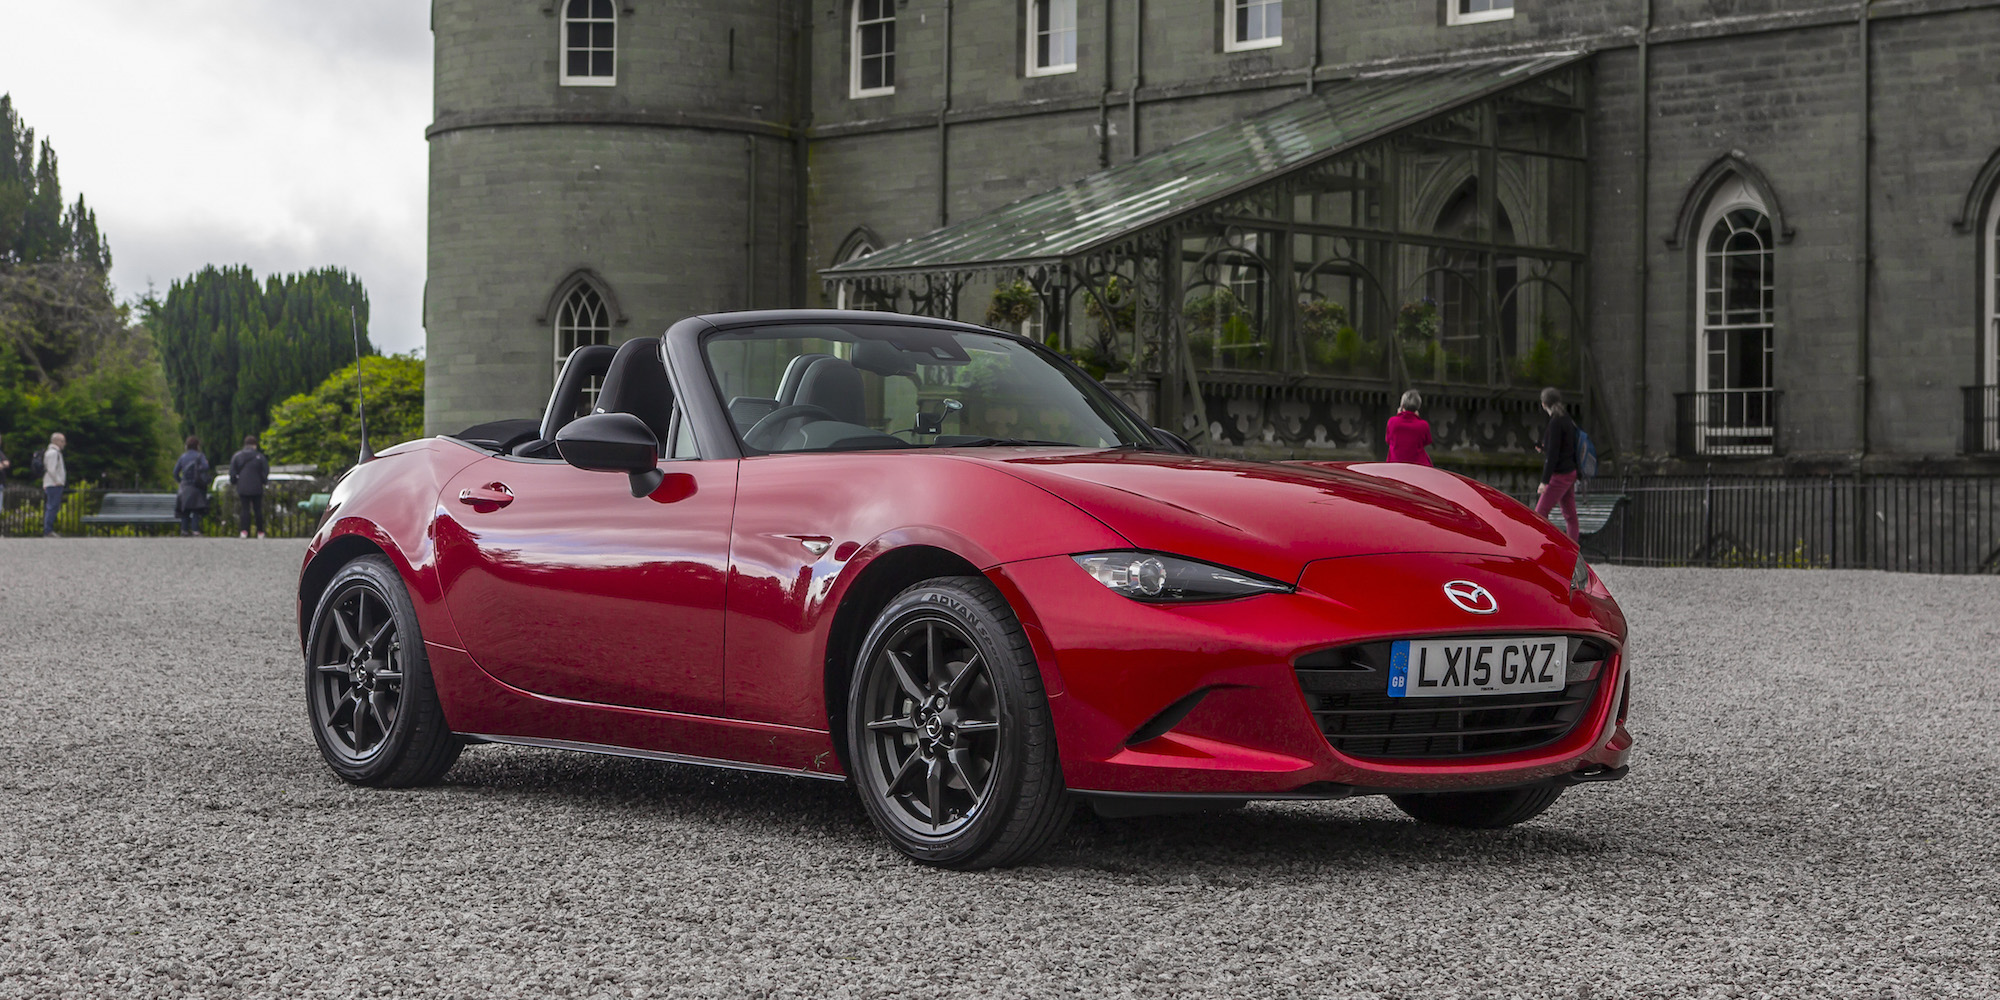 2016 Mazda Mx 5 Exterior Preview (Photo 19 of 31)